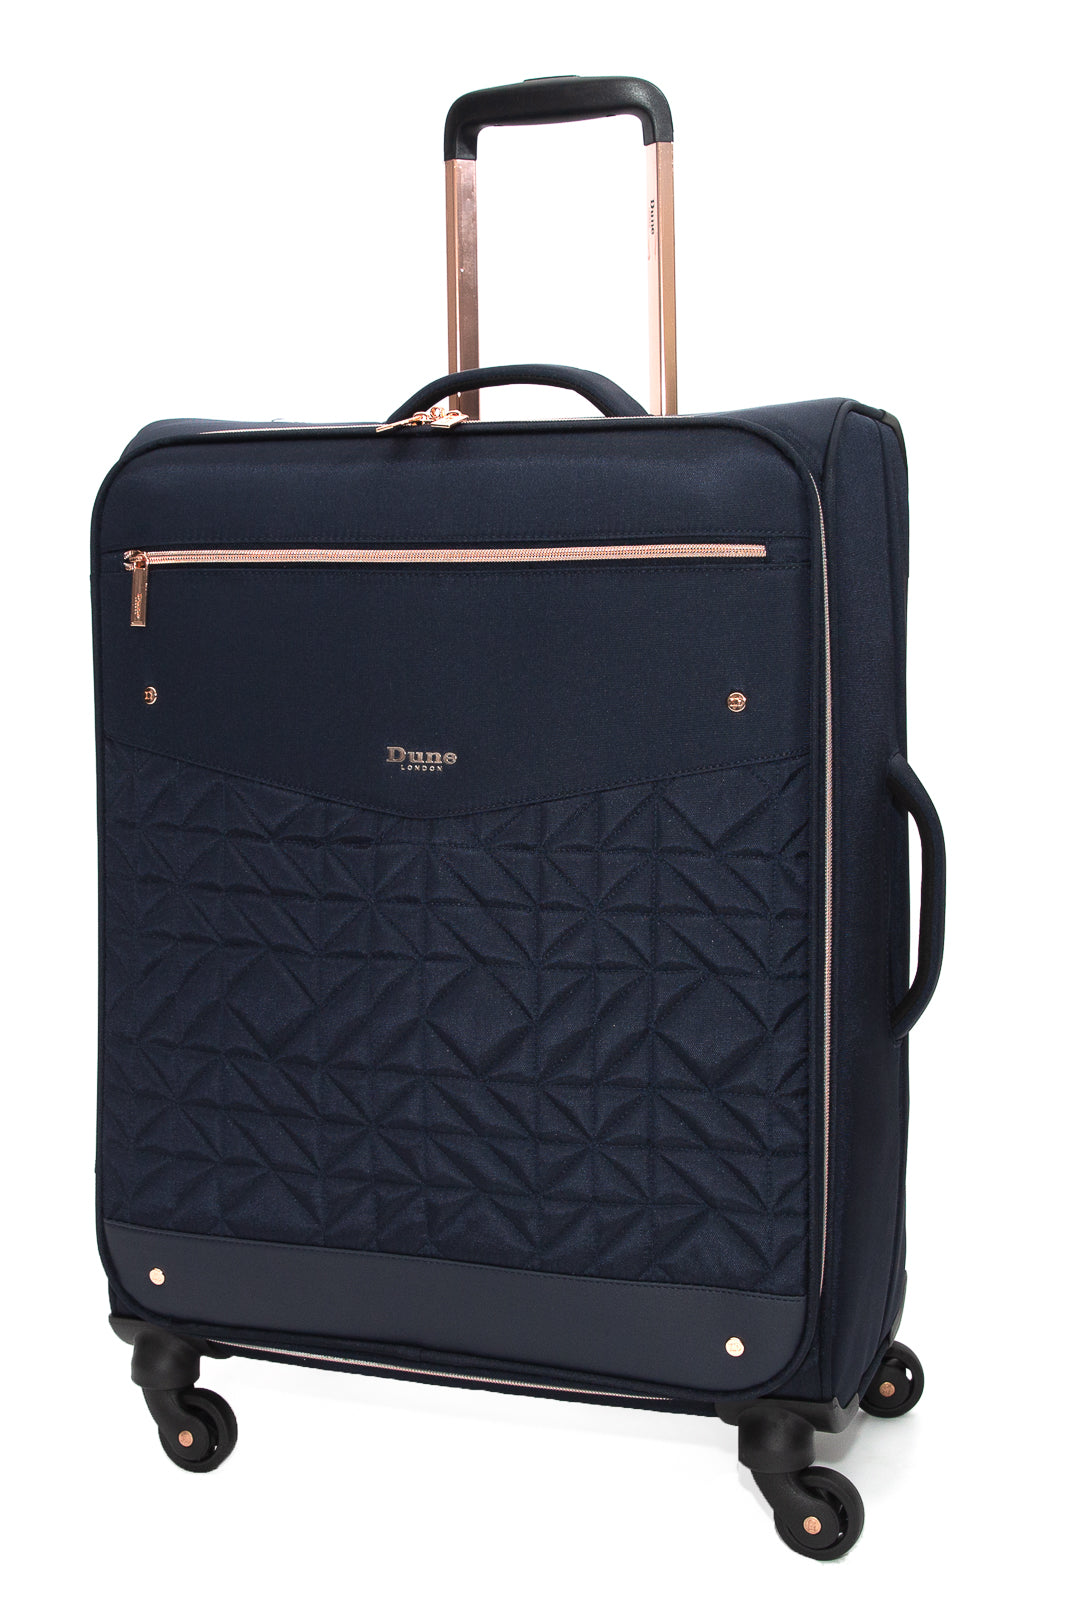 Dune London Tianna 78cm 4-Wheel Suitcase